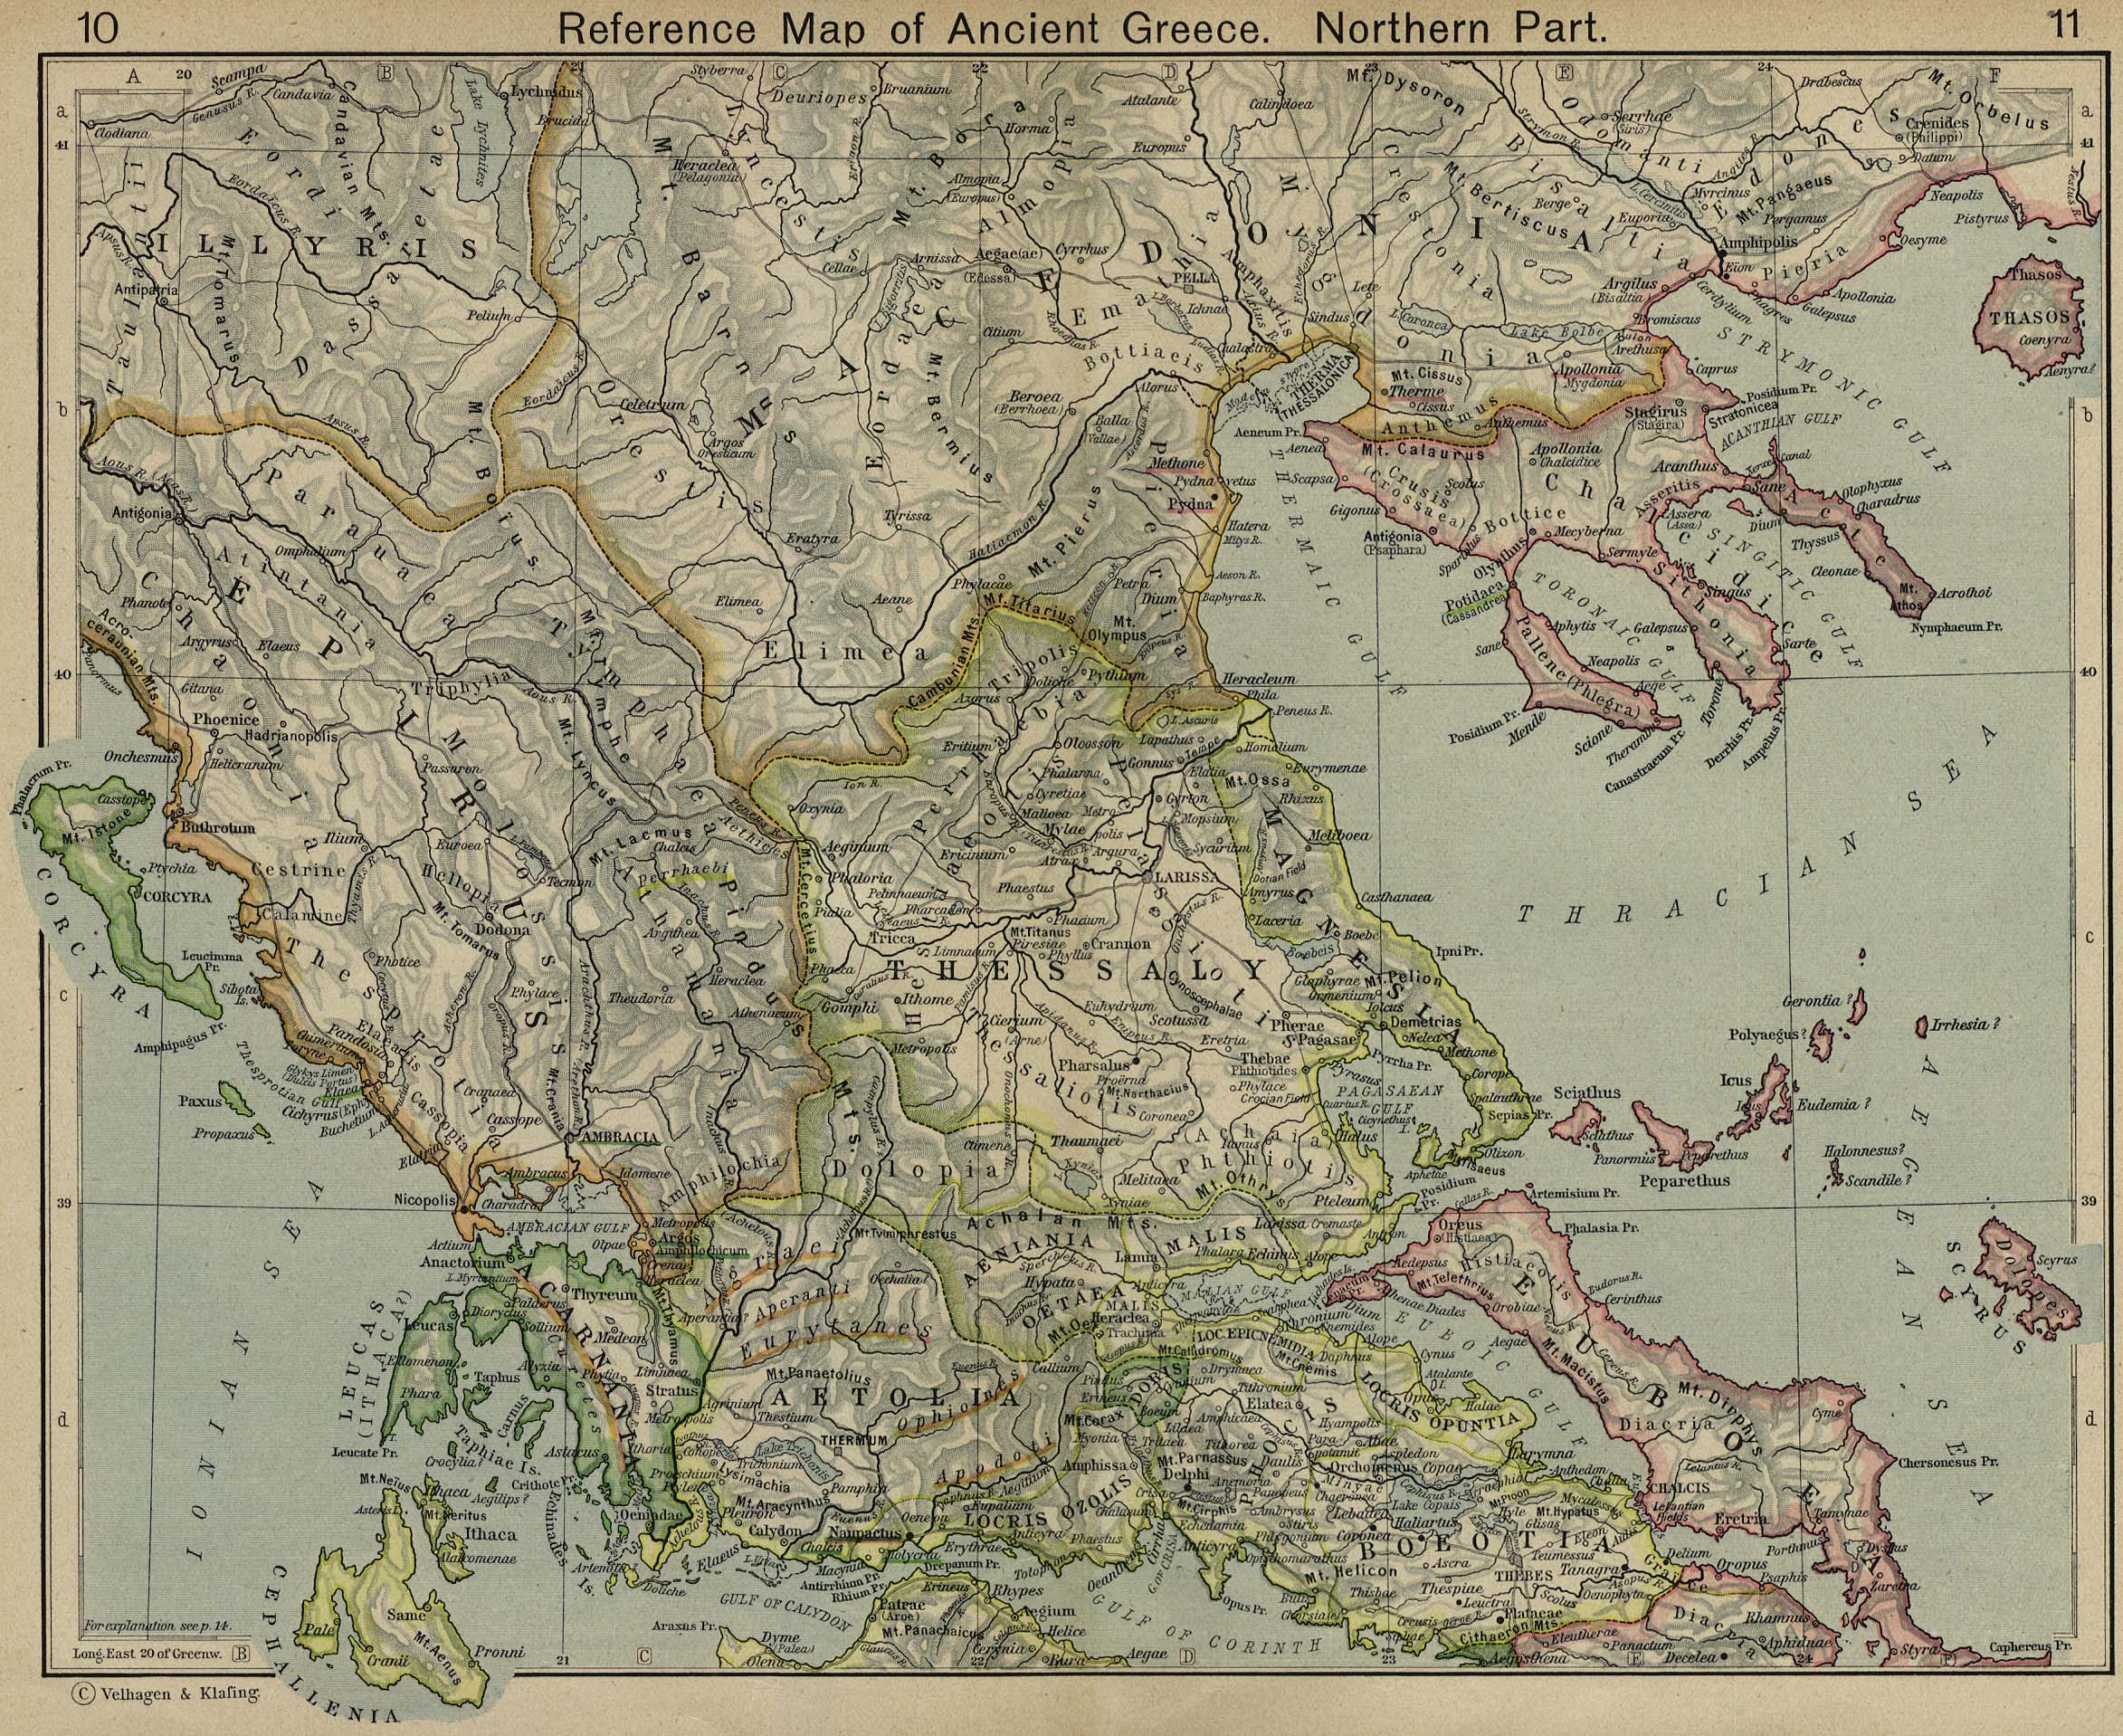 Map of Northern Greece403 BC - AD 180